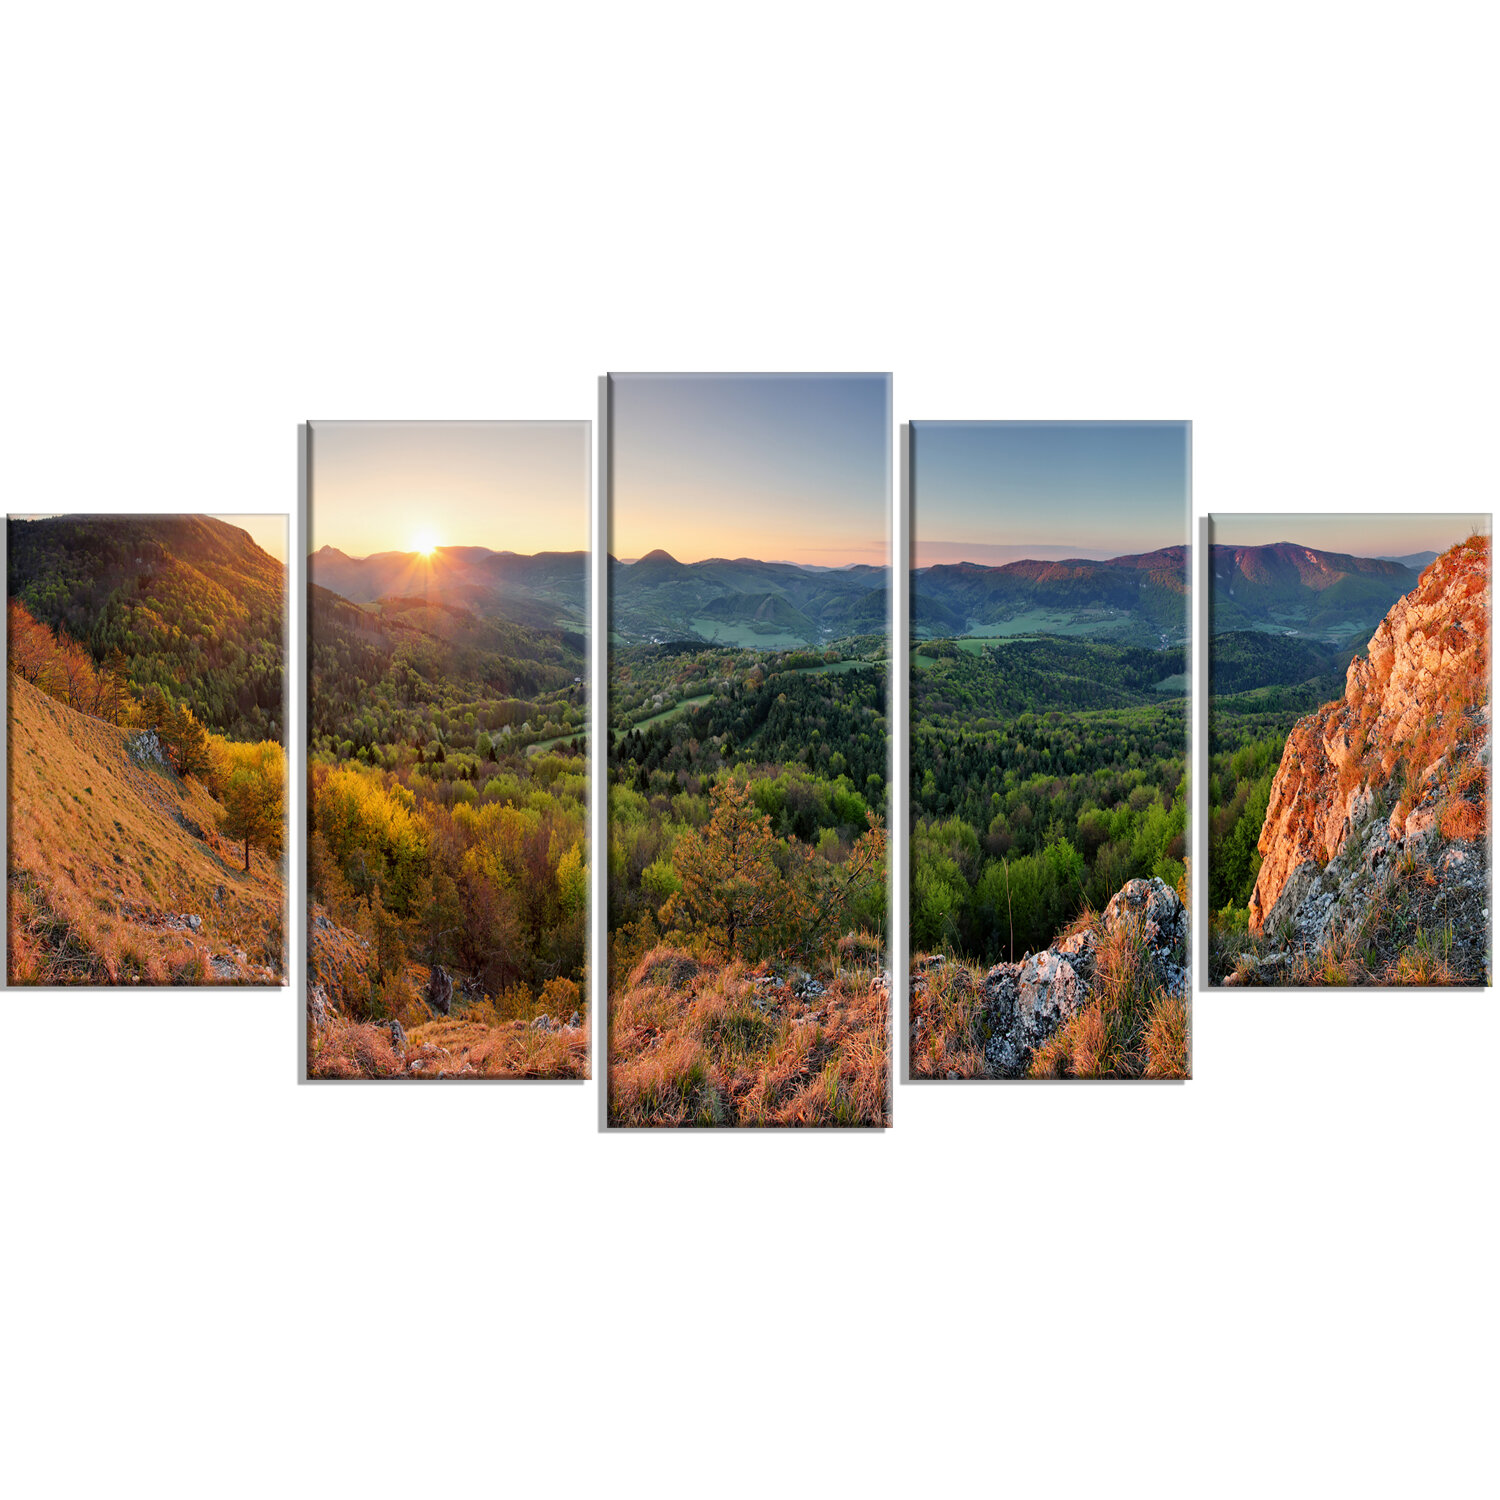 Millwood Pines Spring Forest Slovakia 5 Piece Wall Art On Wrapped Canvas Set Wayfair